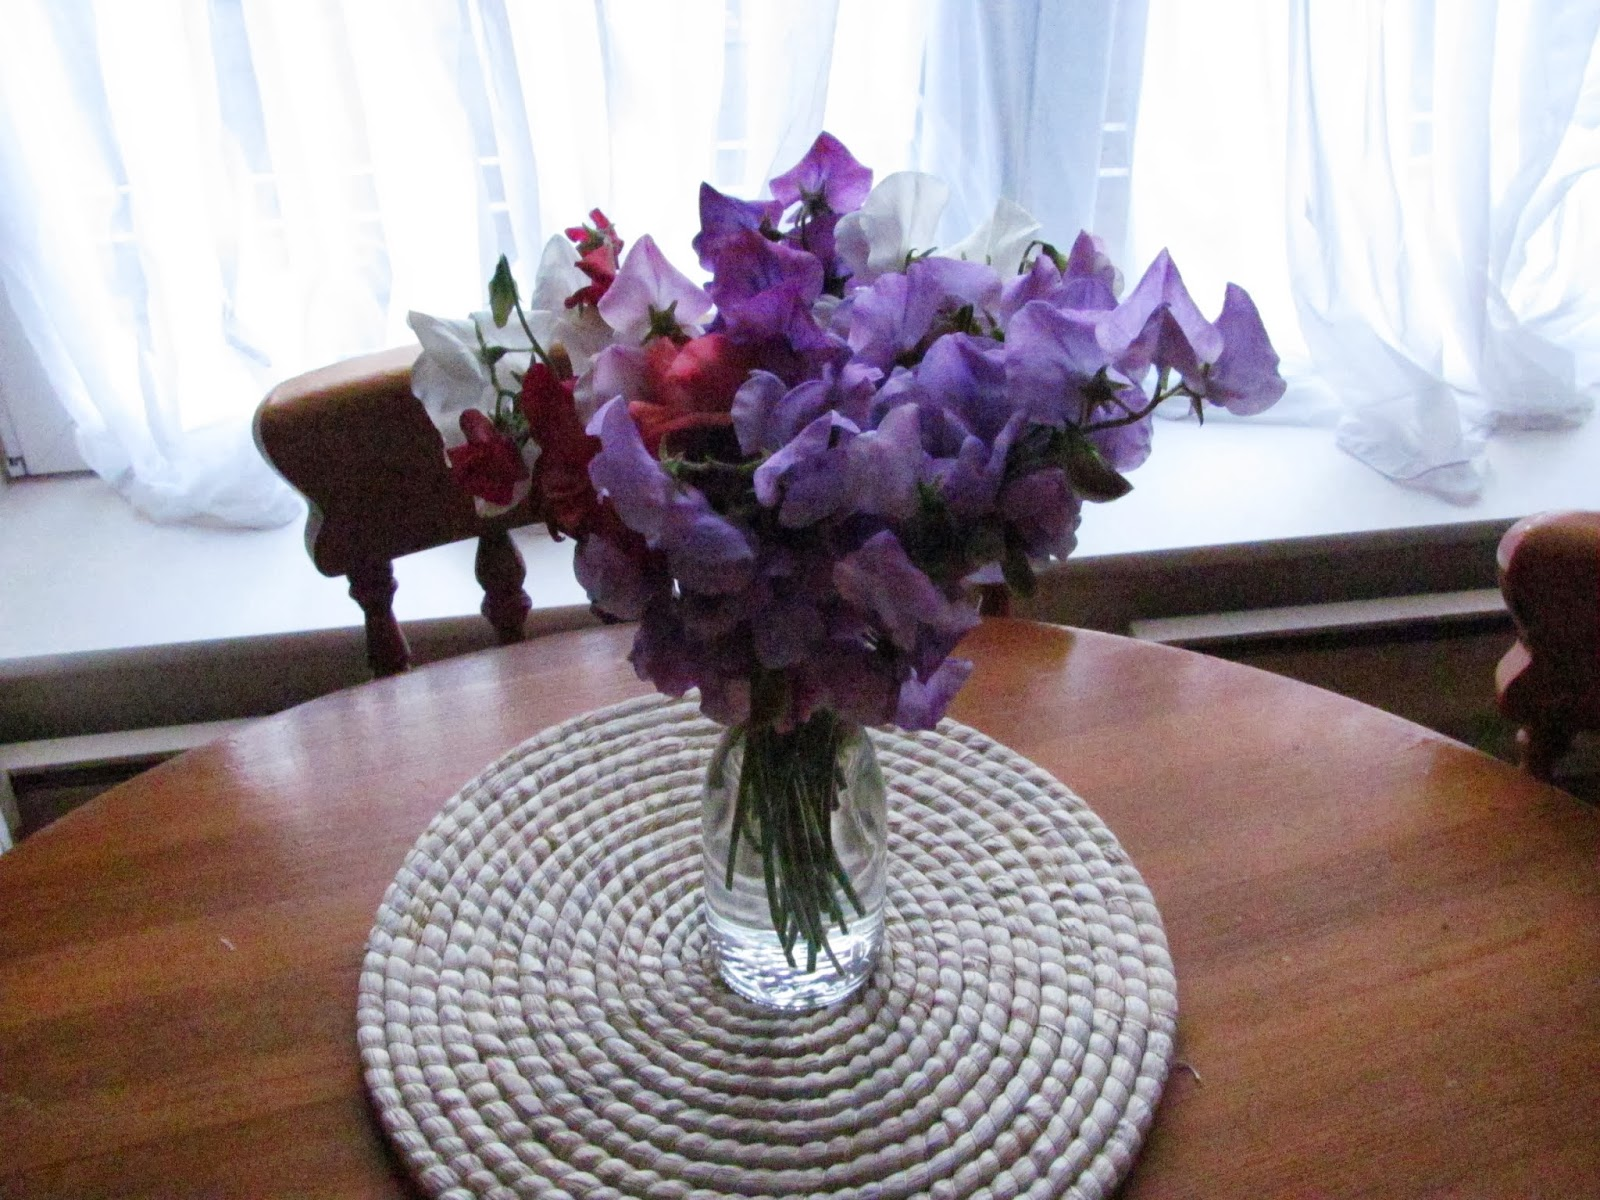 Sweet pea flowers sit in a vase on a dining table in an apartment in Dublin, Ireland